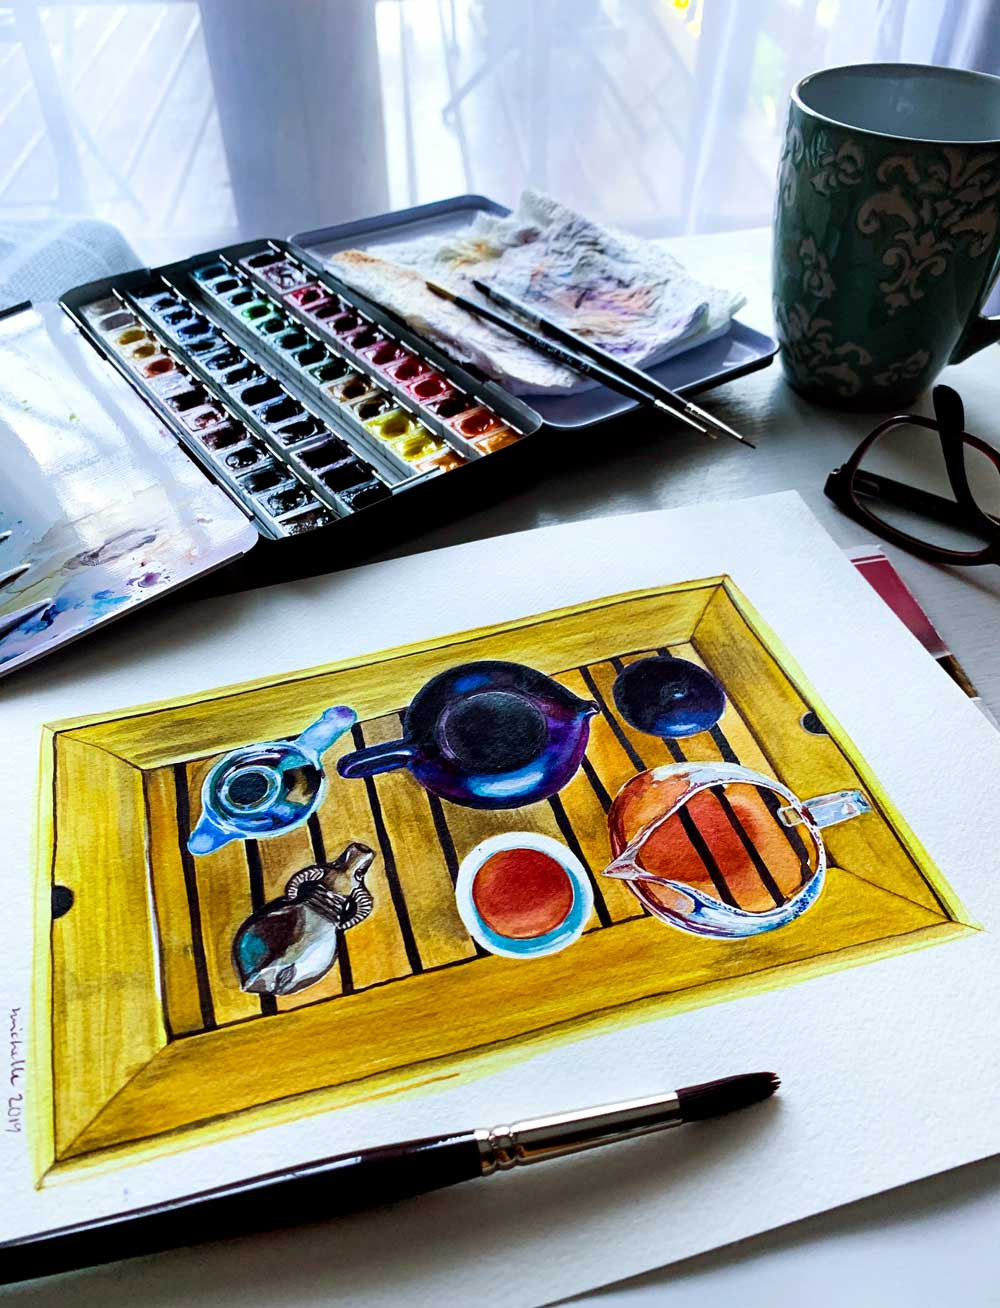 Watercolor paints and a painting of gongfu cha on a table